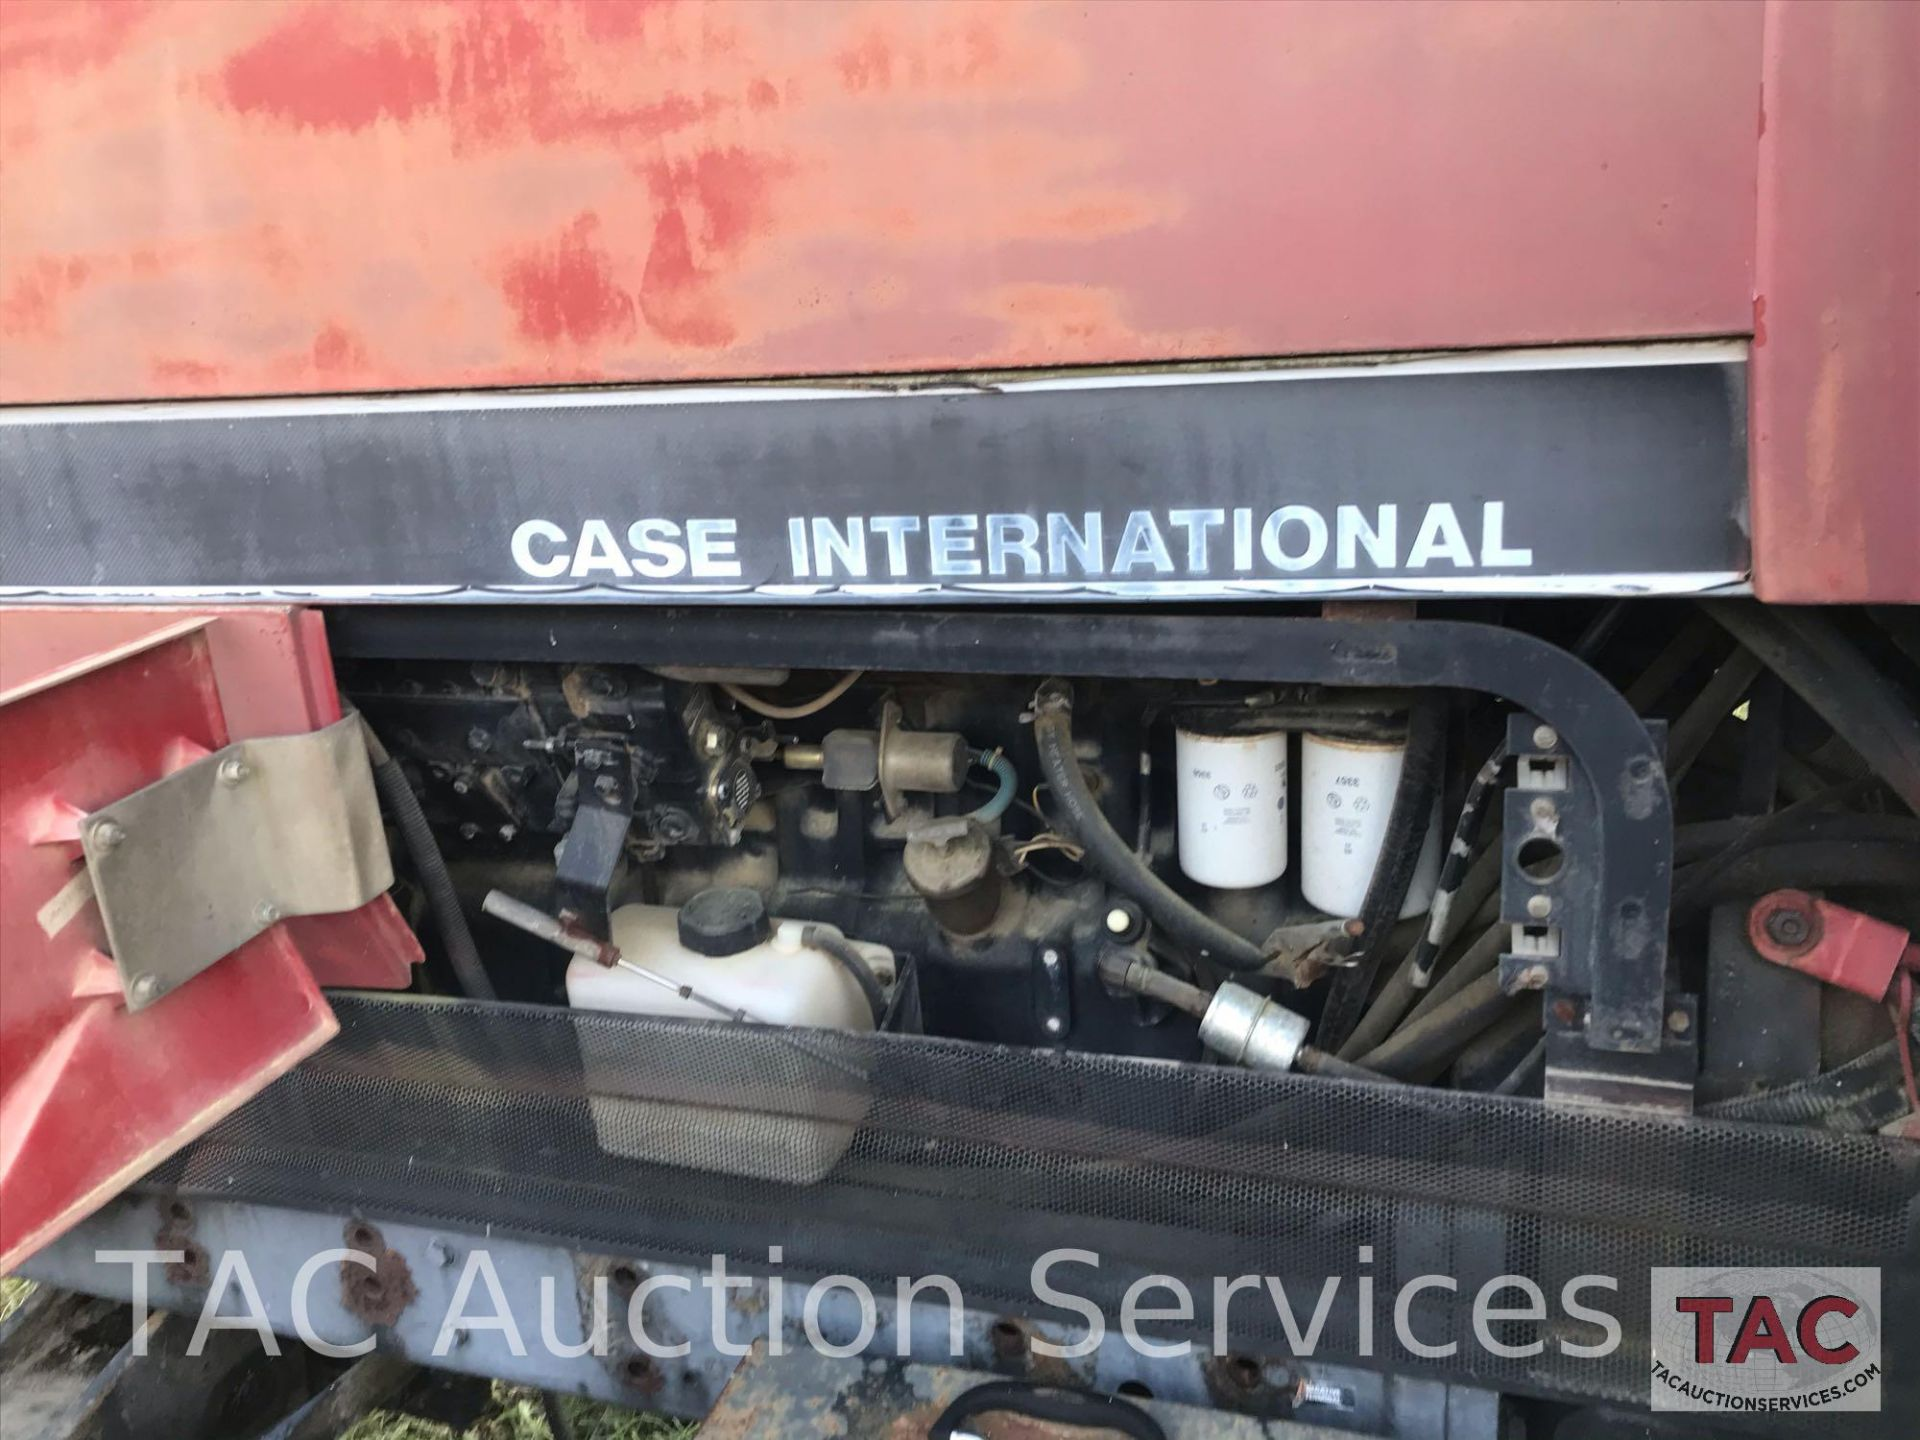 Case International 70 to 20 Magnum Farm Tractor - Image 7 of 25